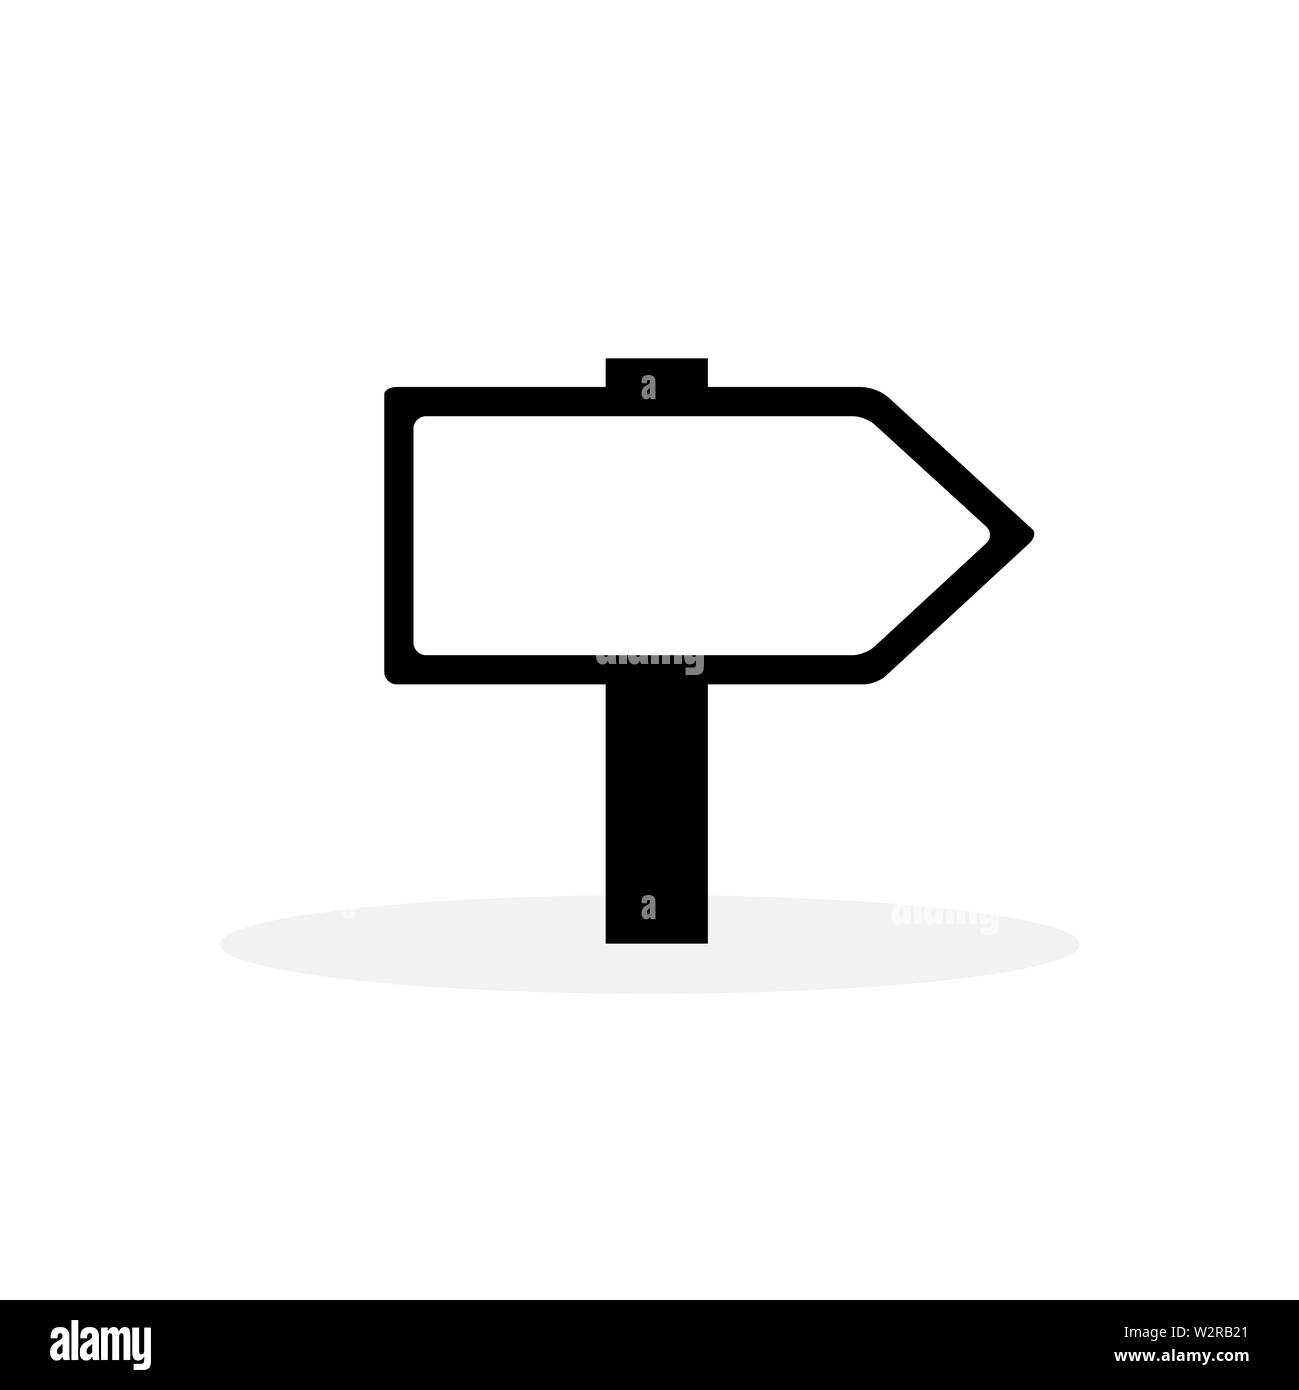 Signpost Icon In Flat Style Vector For Apps, UI, Websites. Black Icon Vector Illustration. - Stock Image